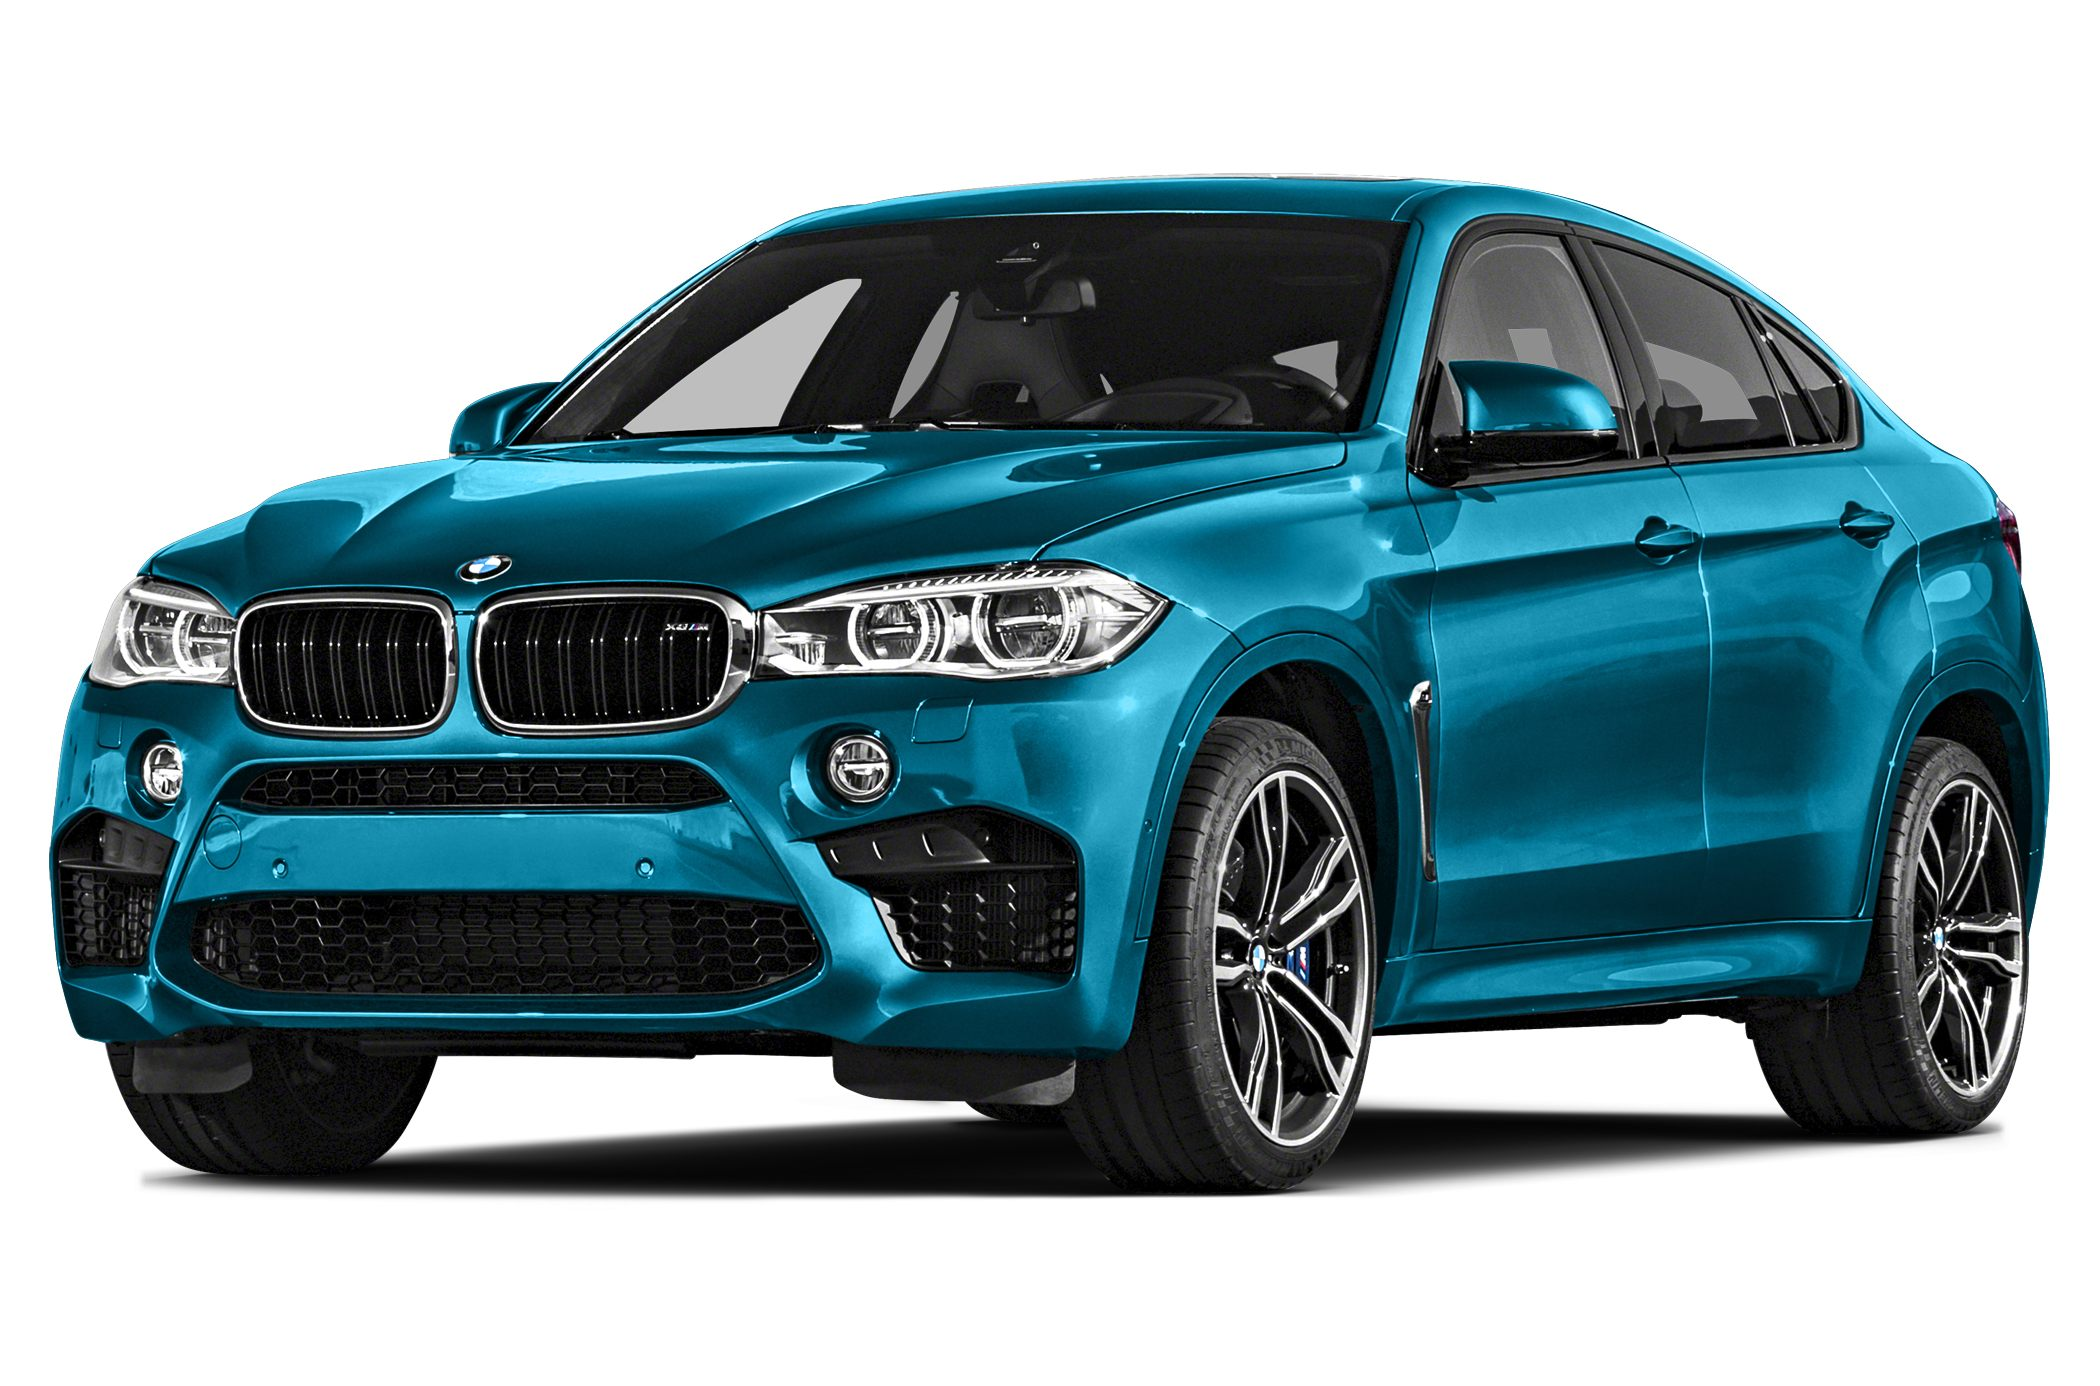 sale air shipping auto auction price freight cars htm on a for in bmw